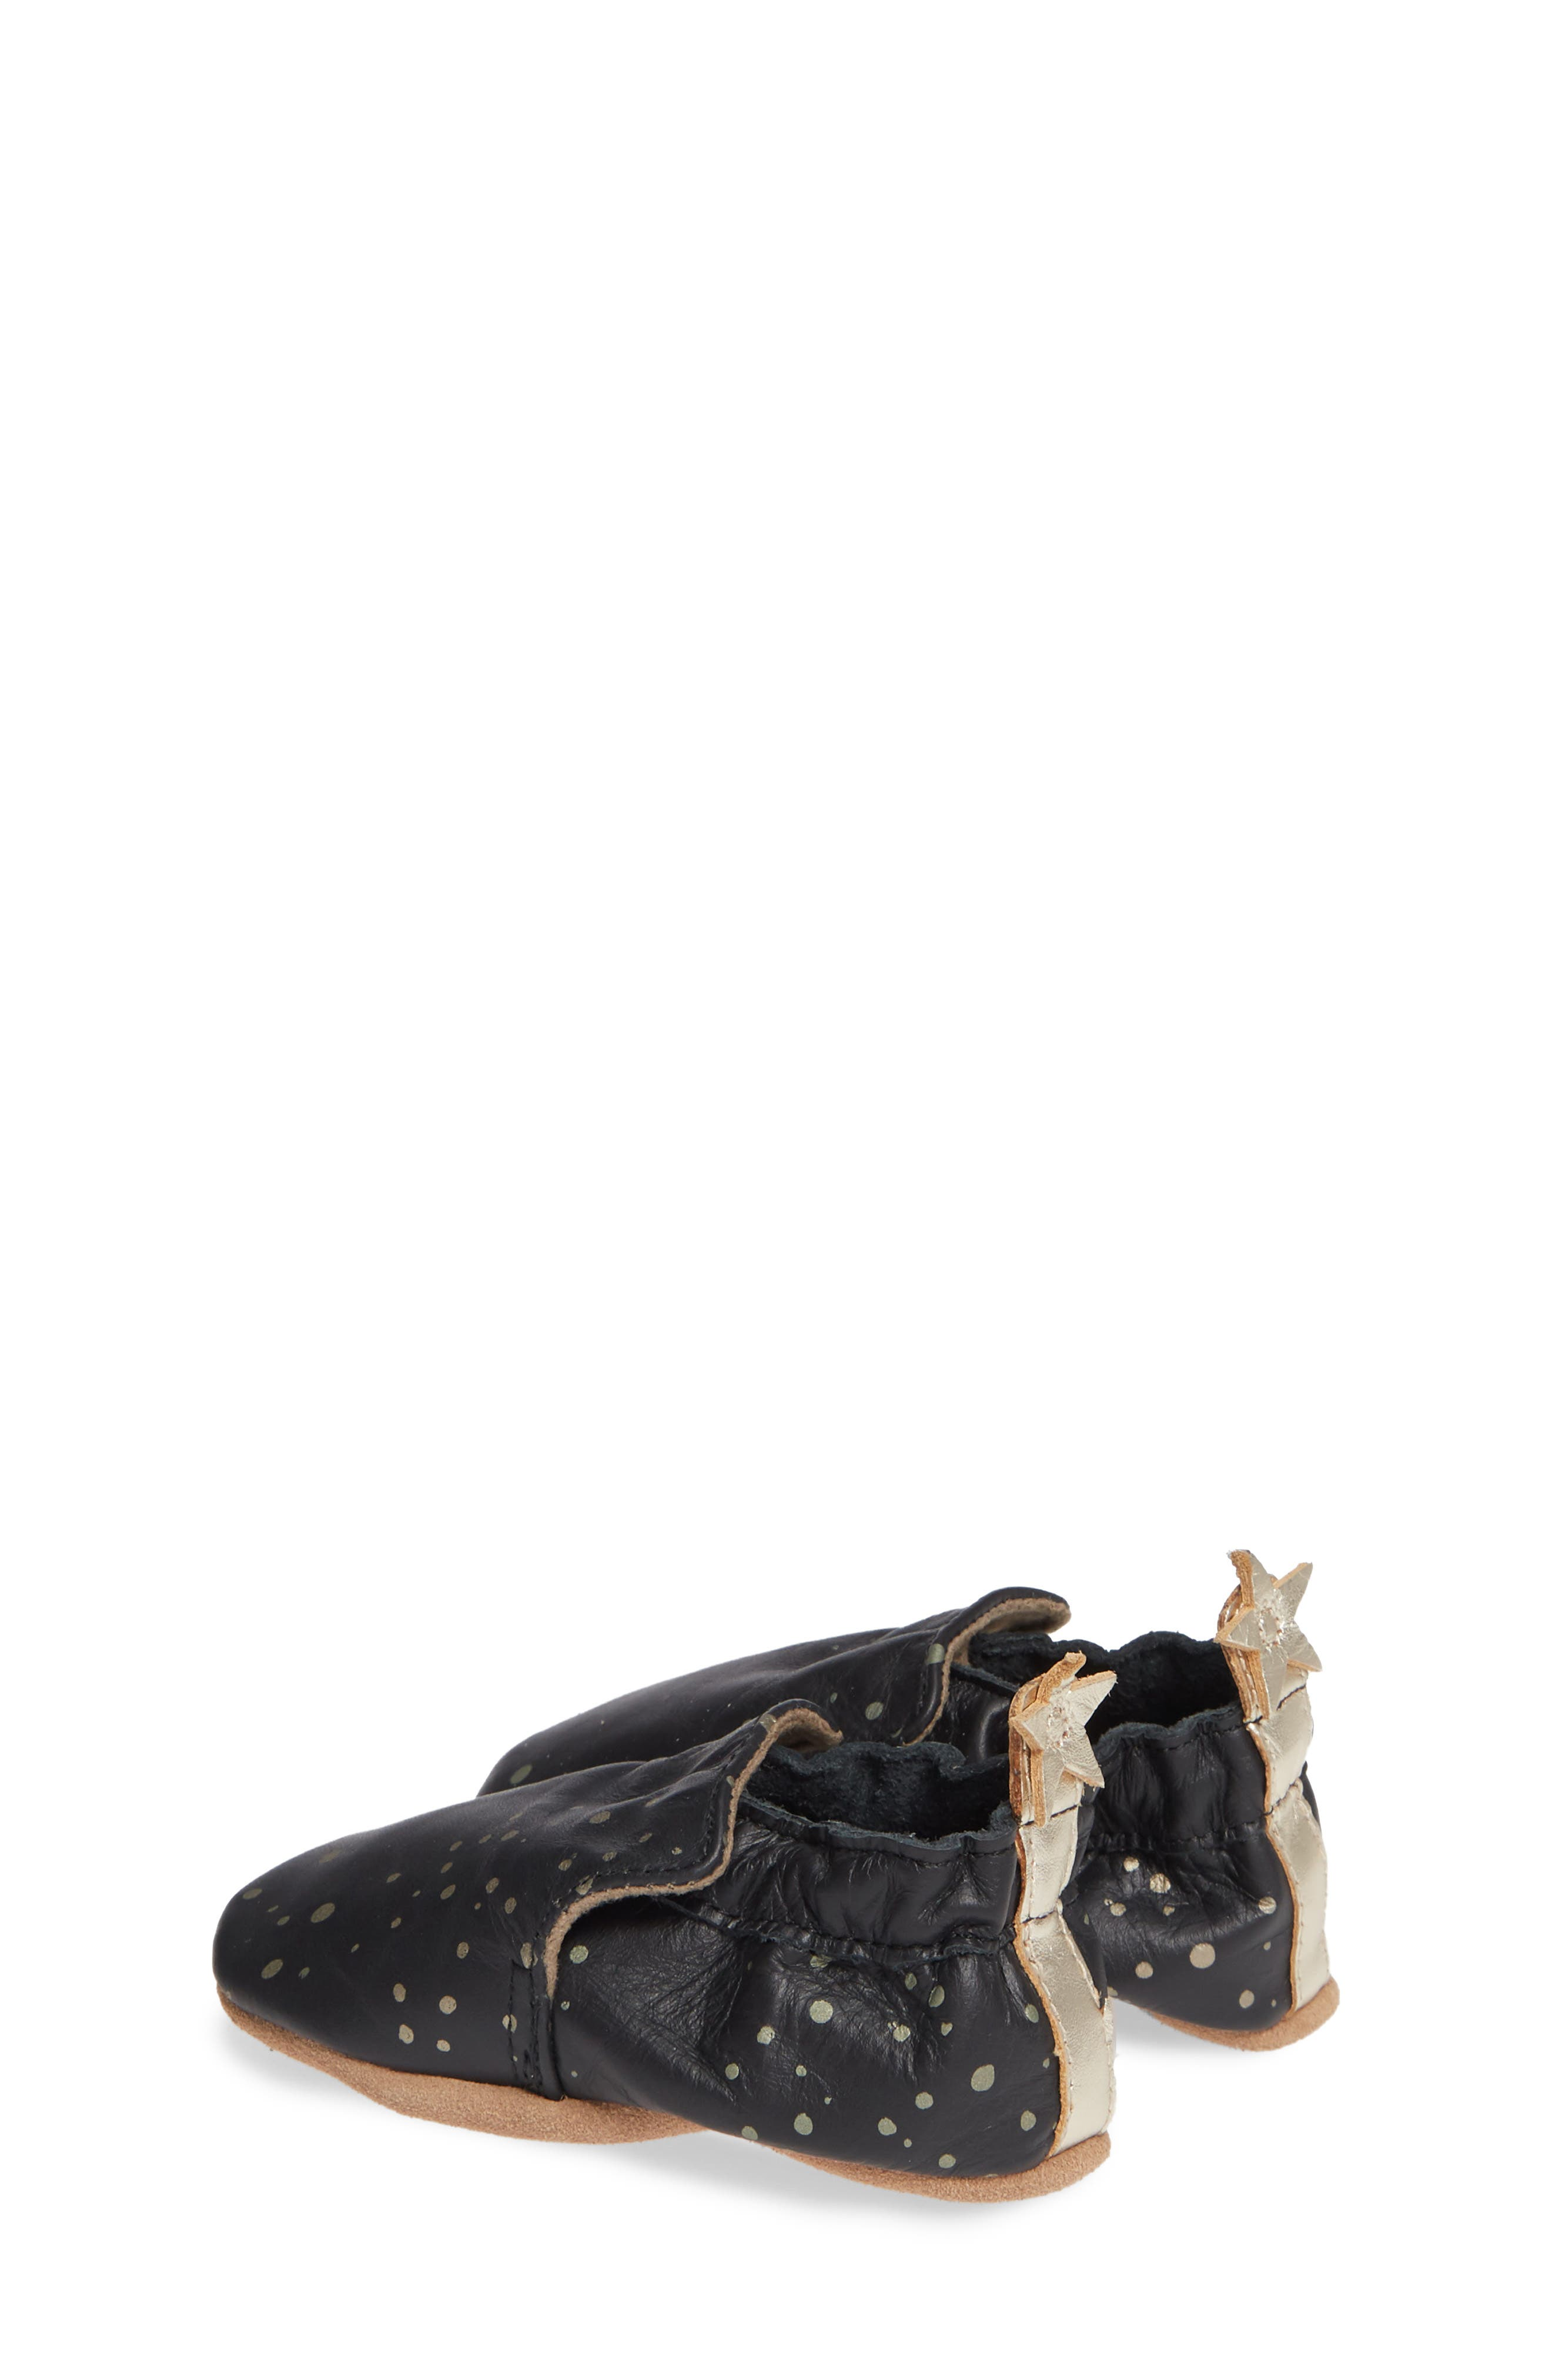 ROBEEZ<SUP>®</SUP>, Galaxy Girl Moccasin Crib Shoe, Alternate thumbnail 3, color, BLACK